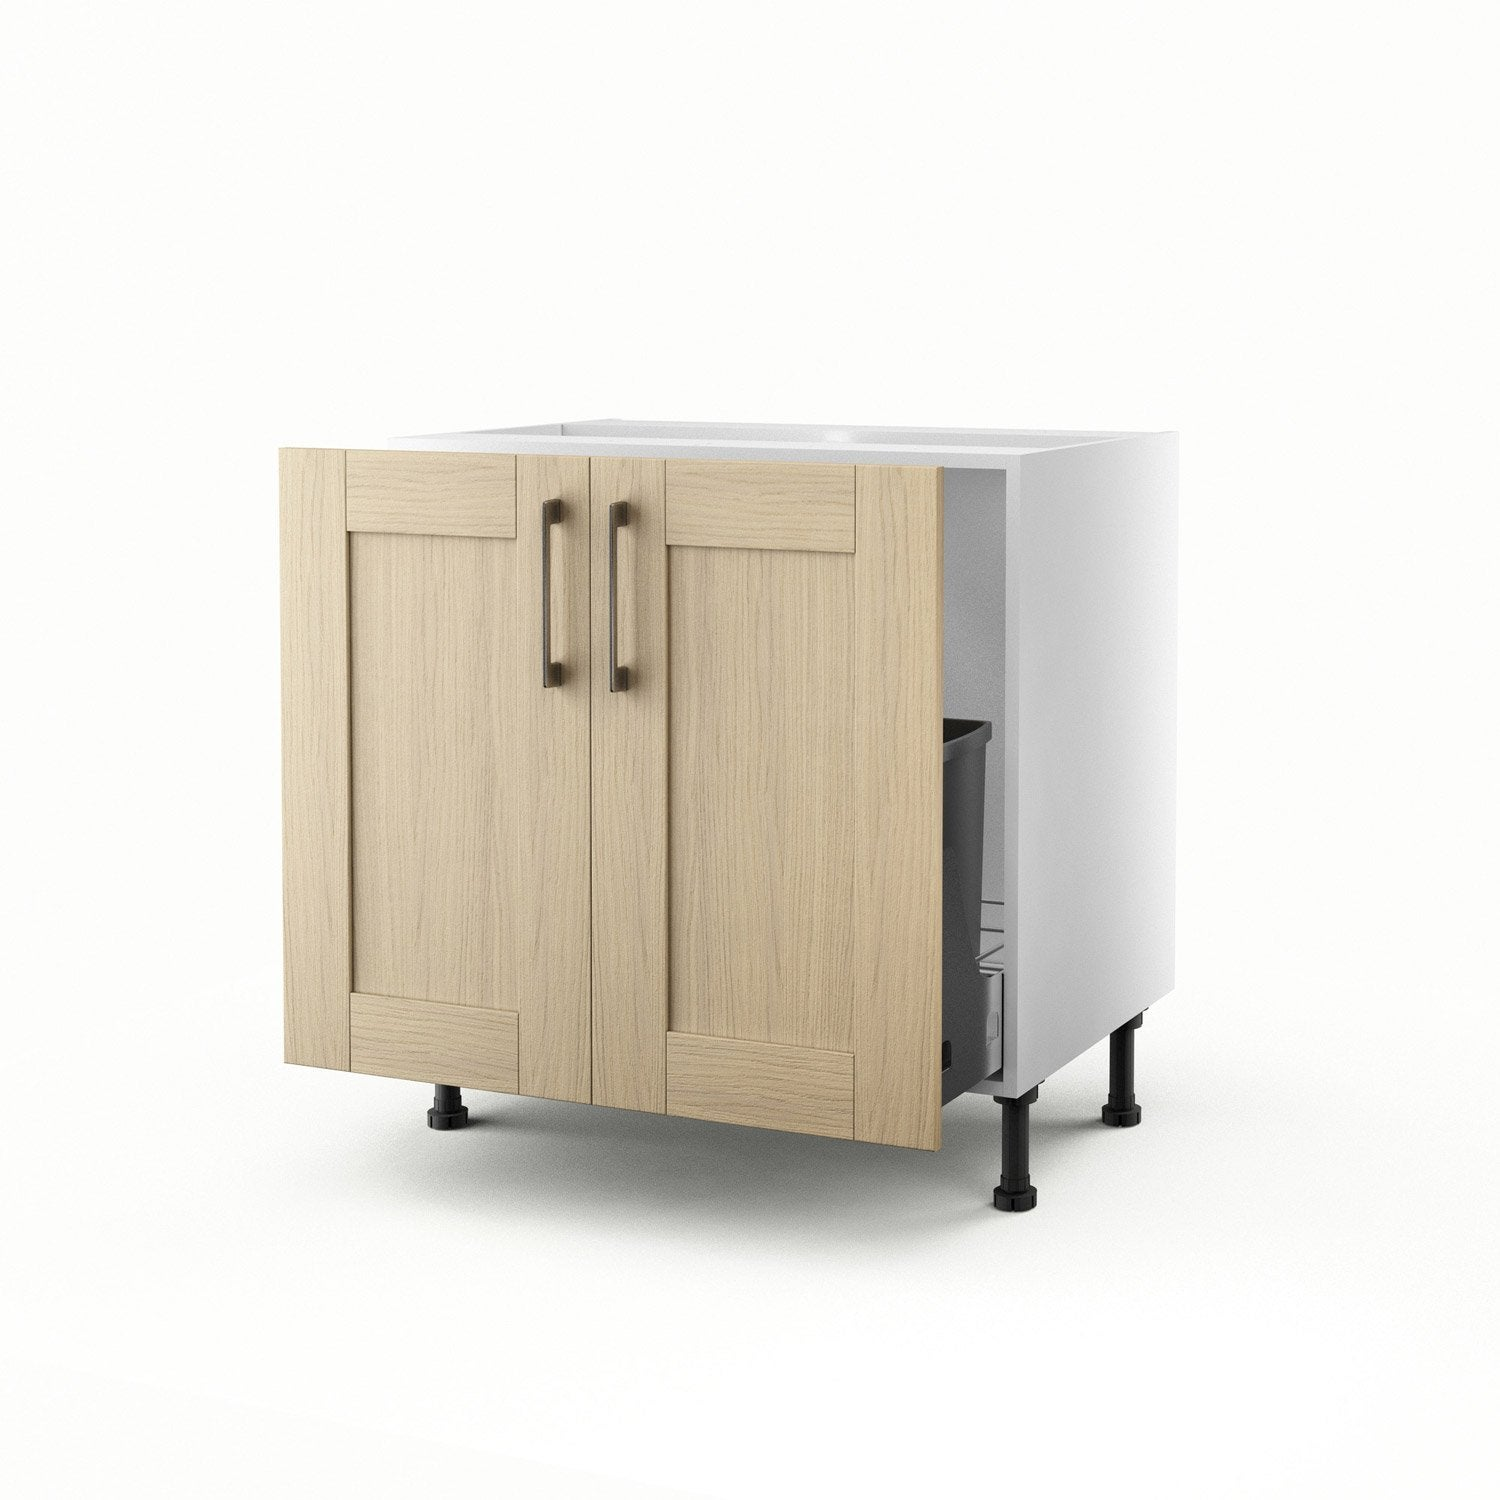 Meuble four encastrable leroy merlin maison design - Leroy merlin meuble cuisine ...